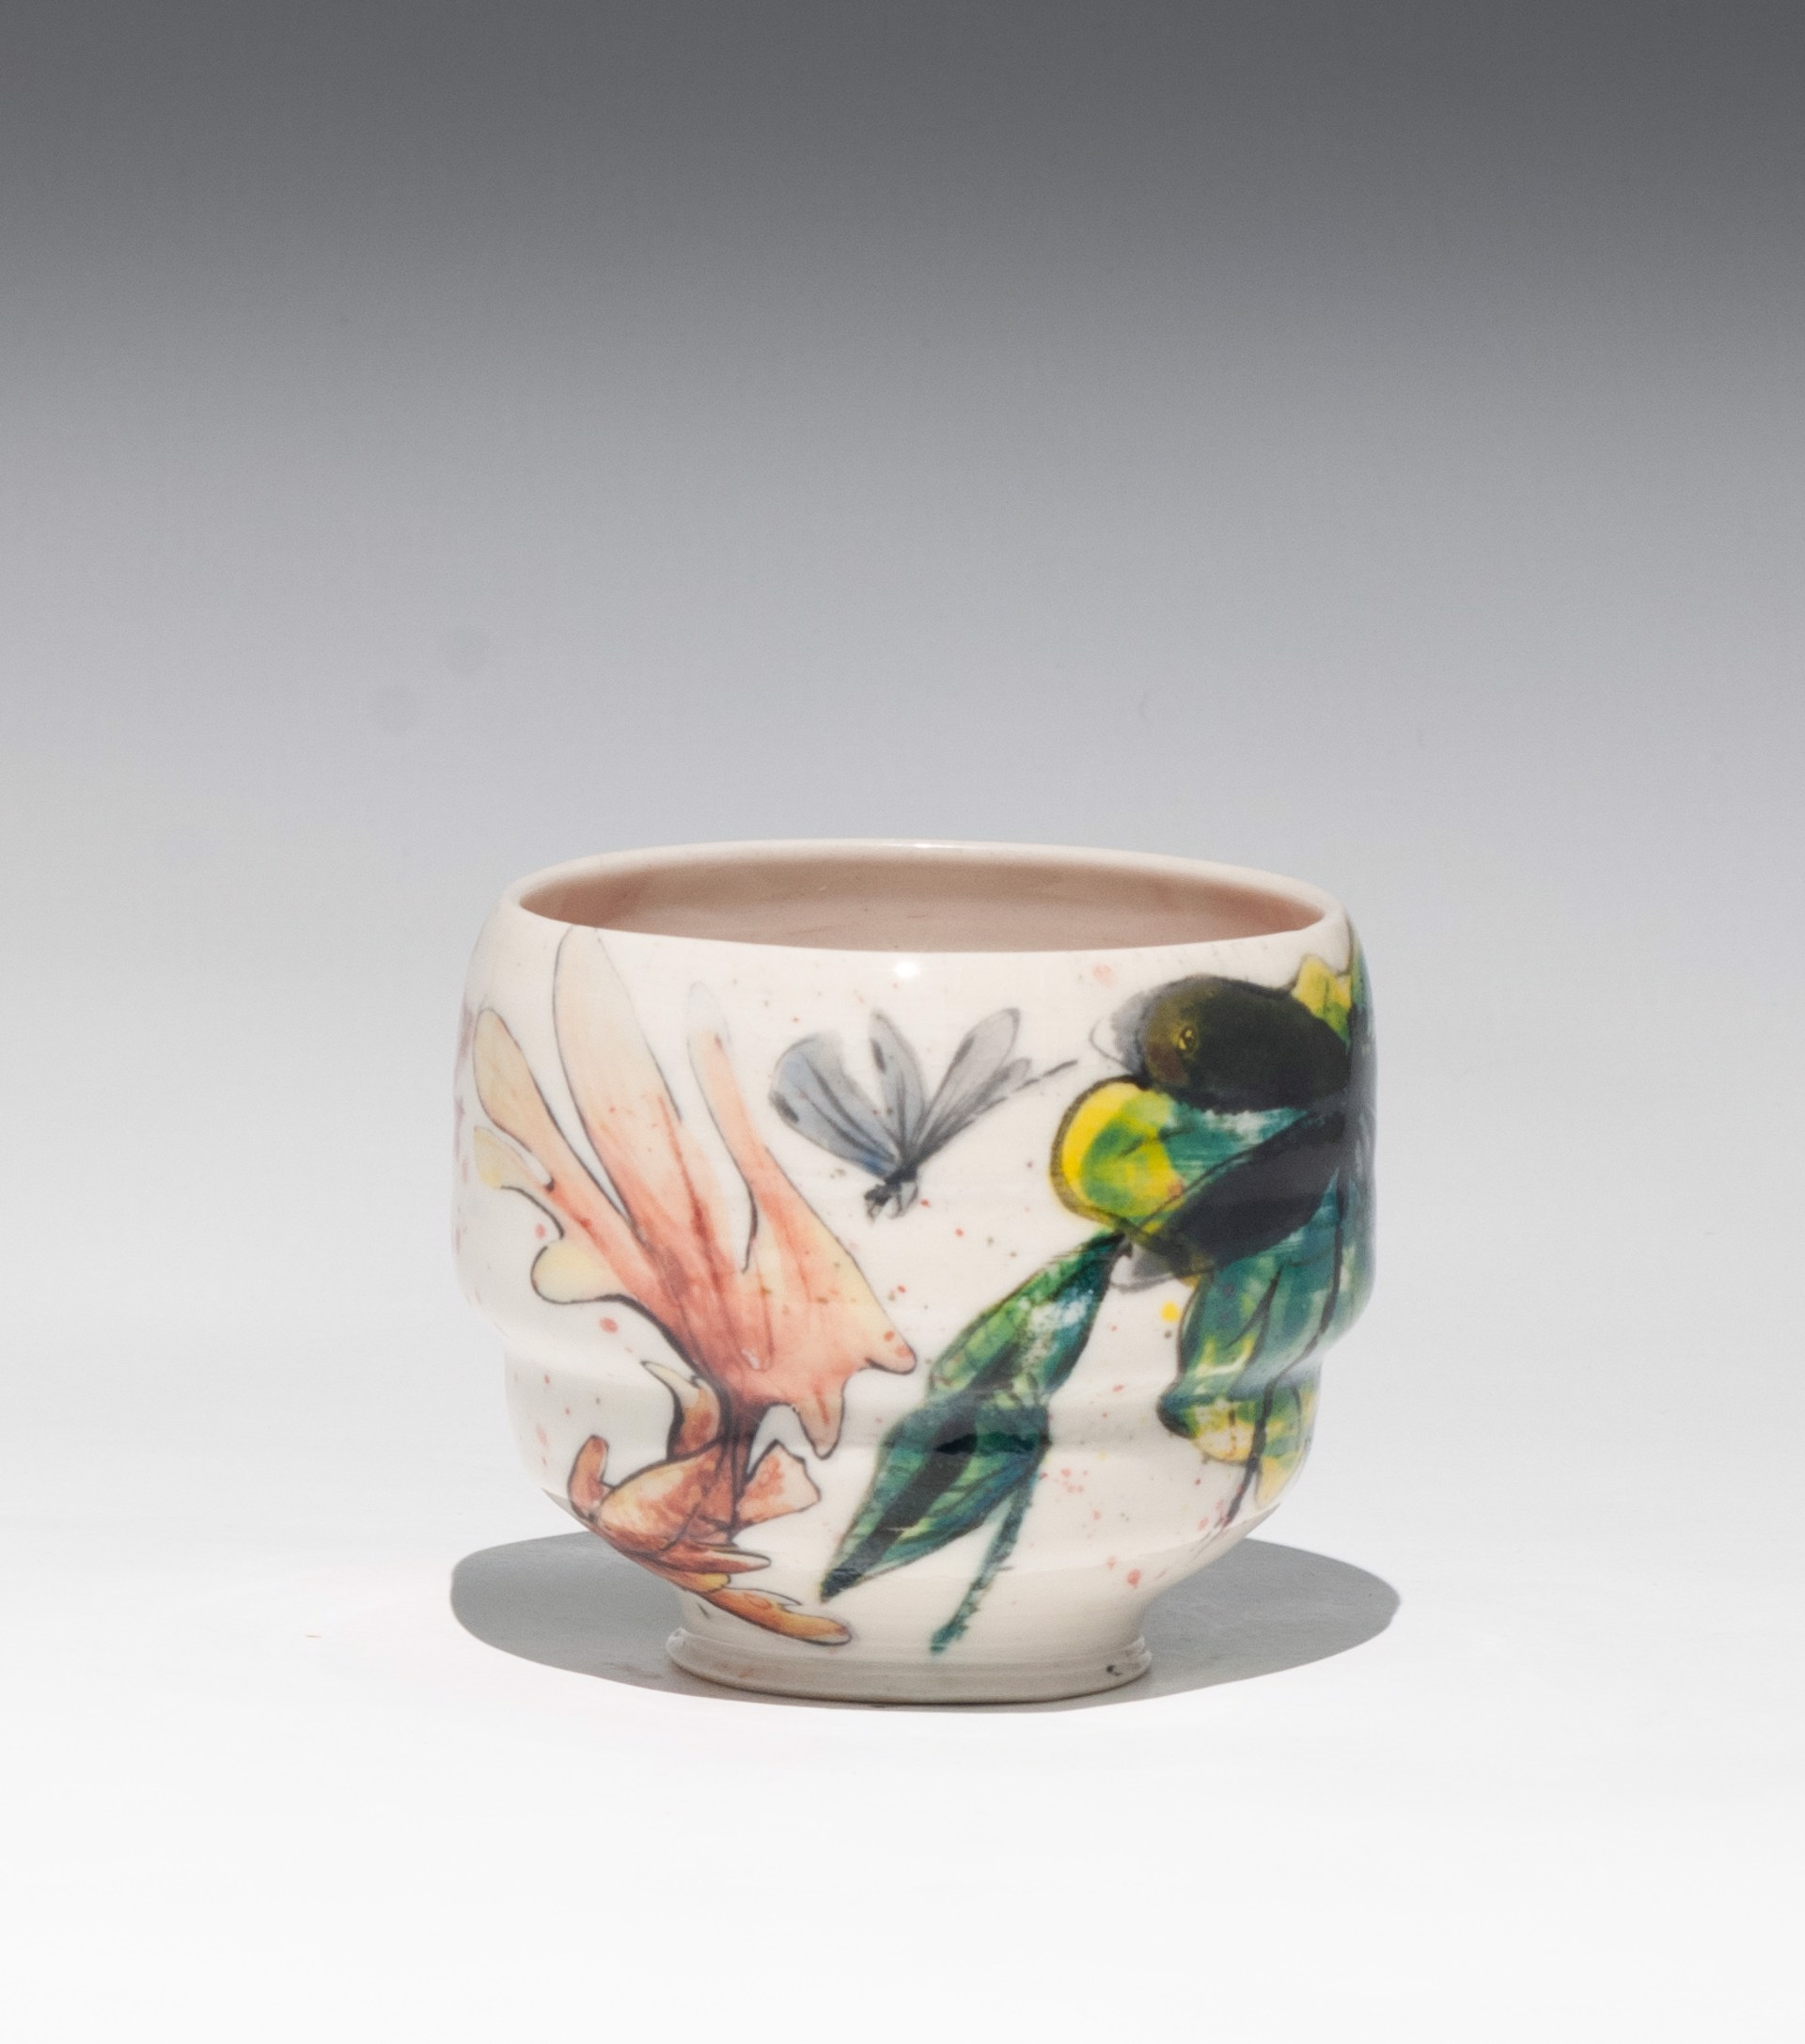 Insect Tea Bowl 10 by Caroline Bottom Anderson